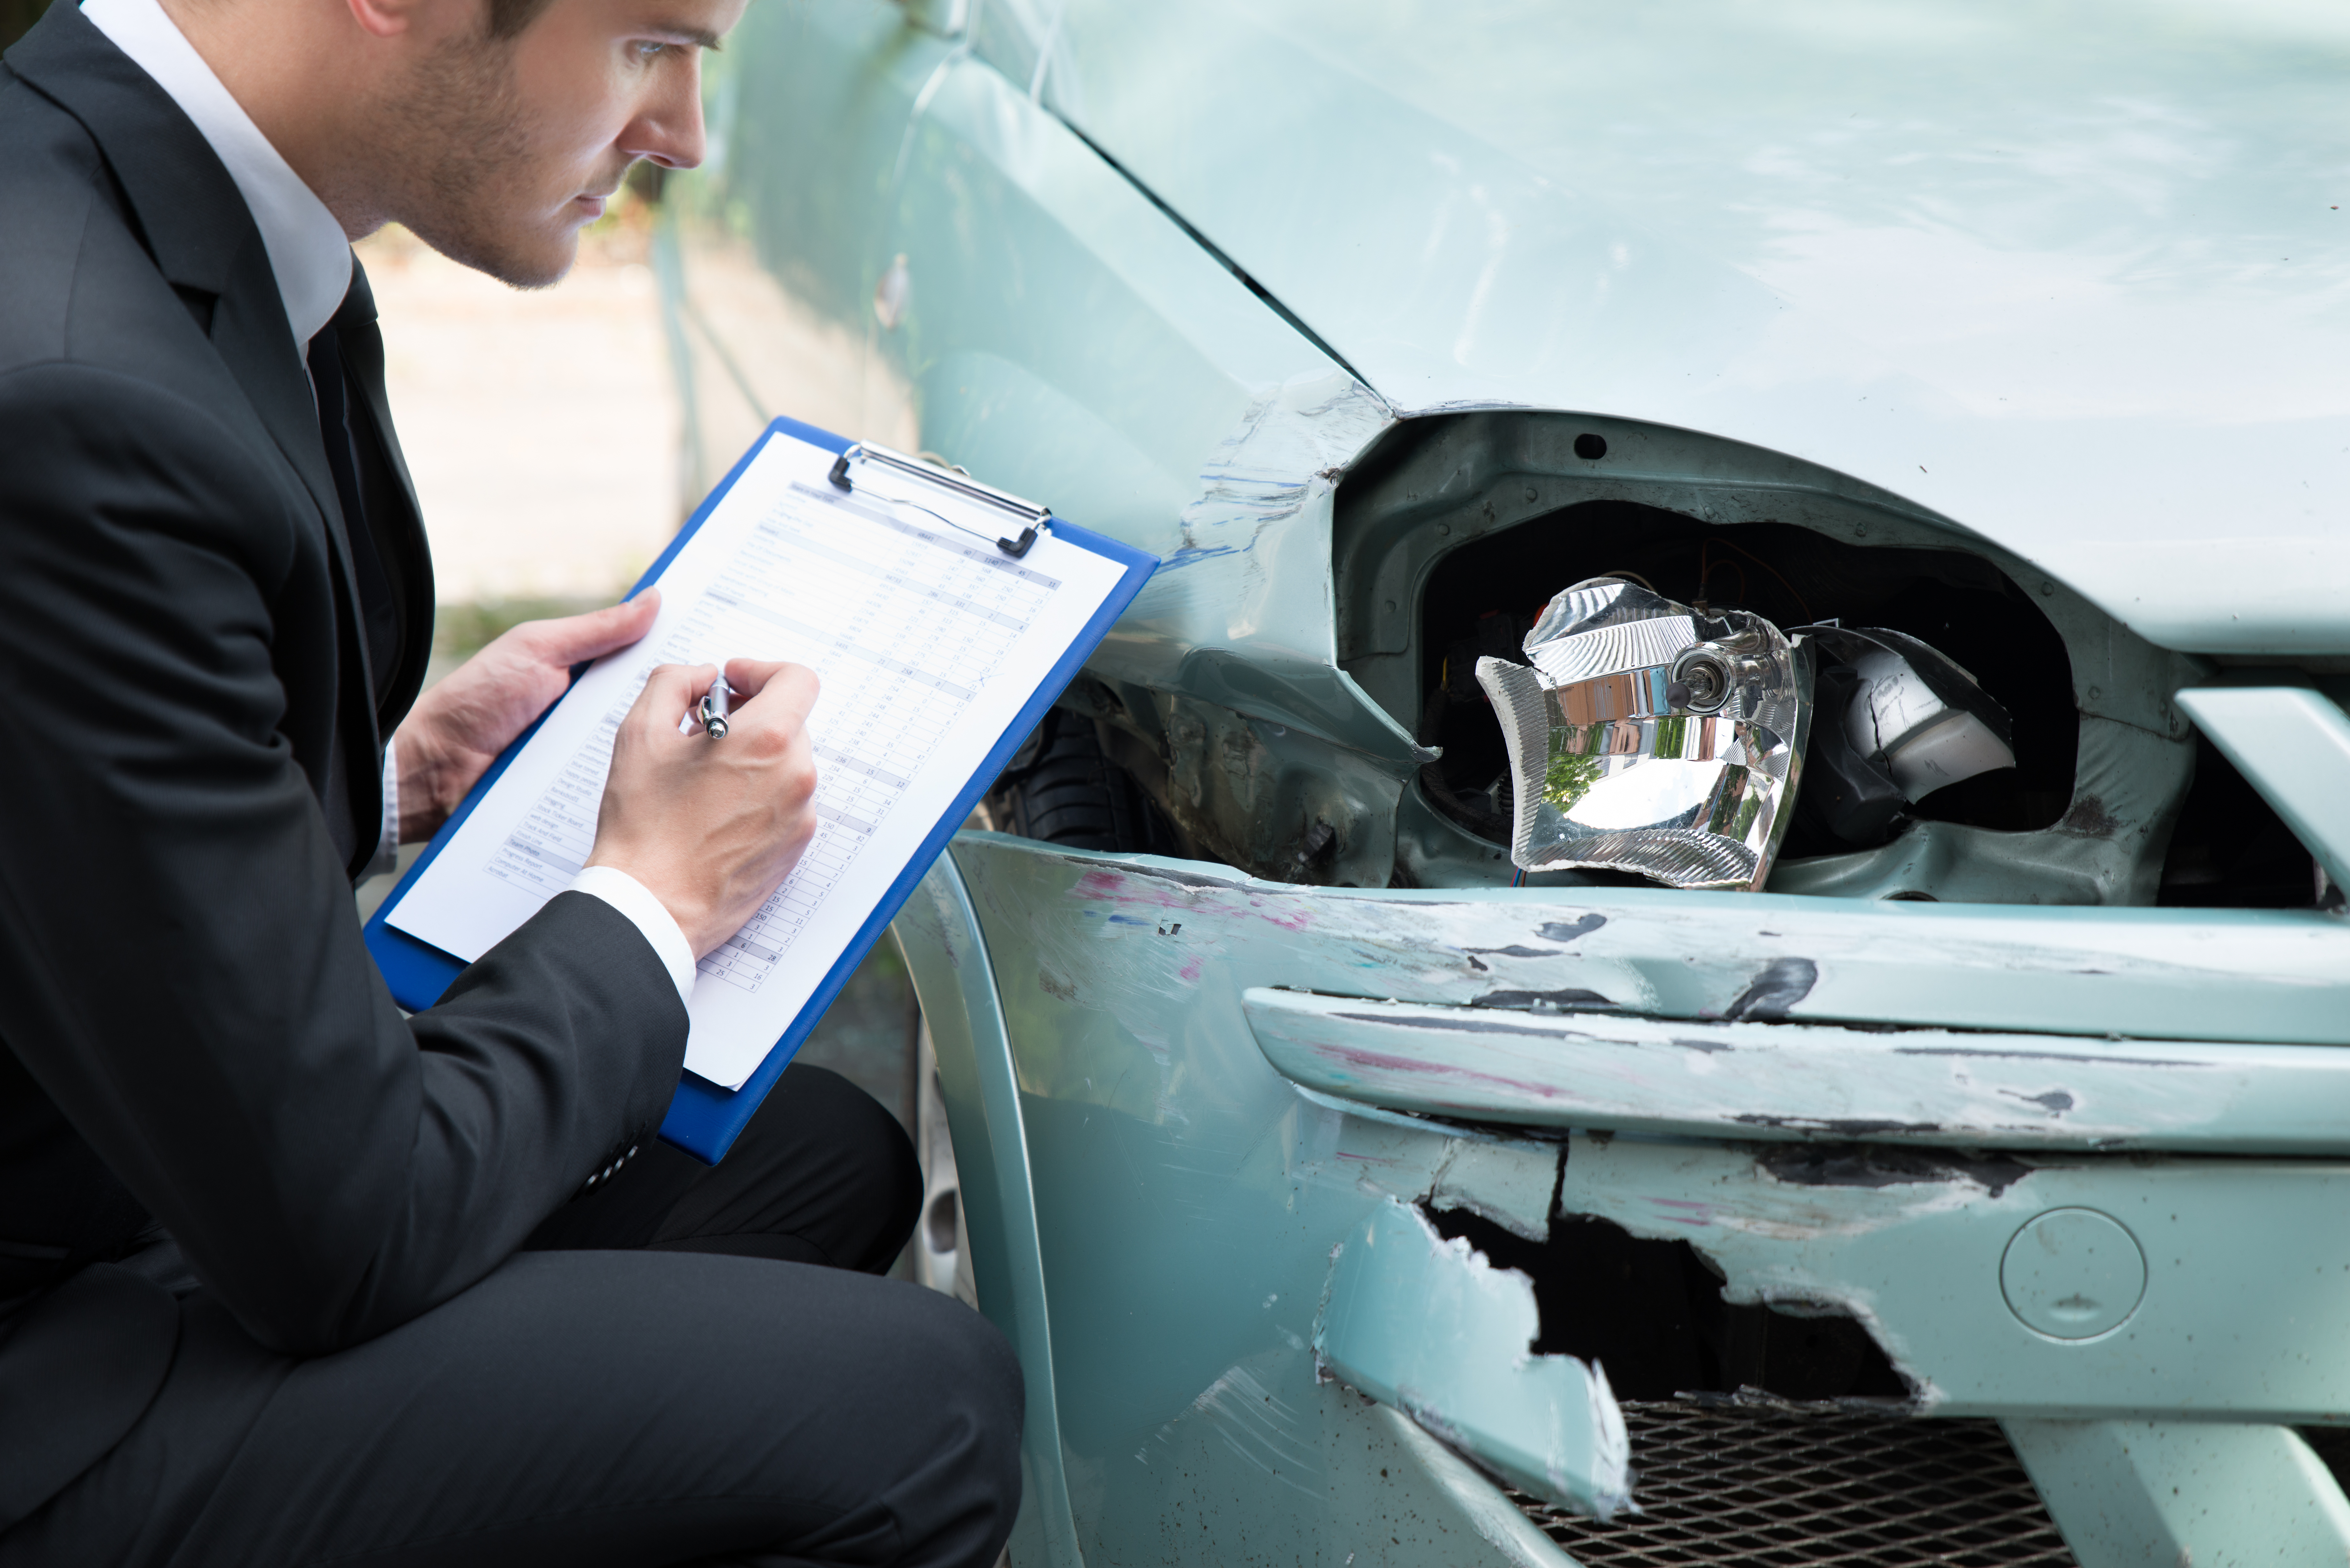 Important Steps To Take Right After An Accident